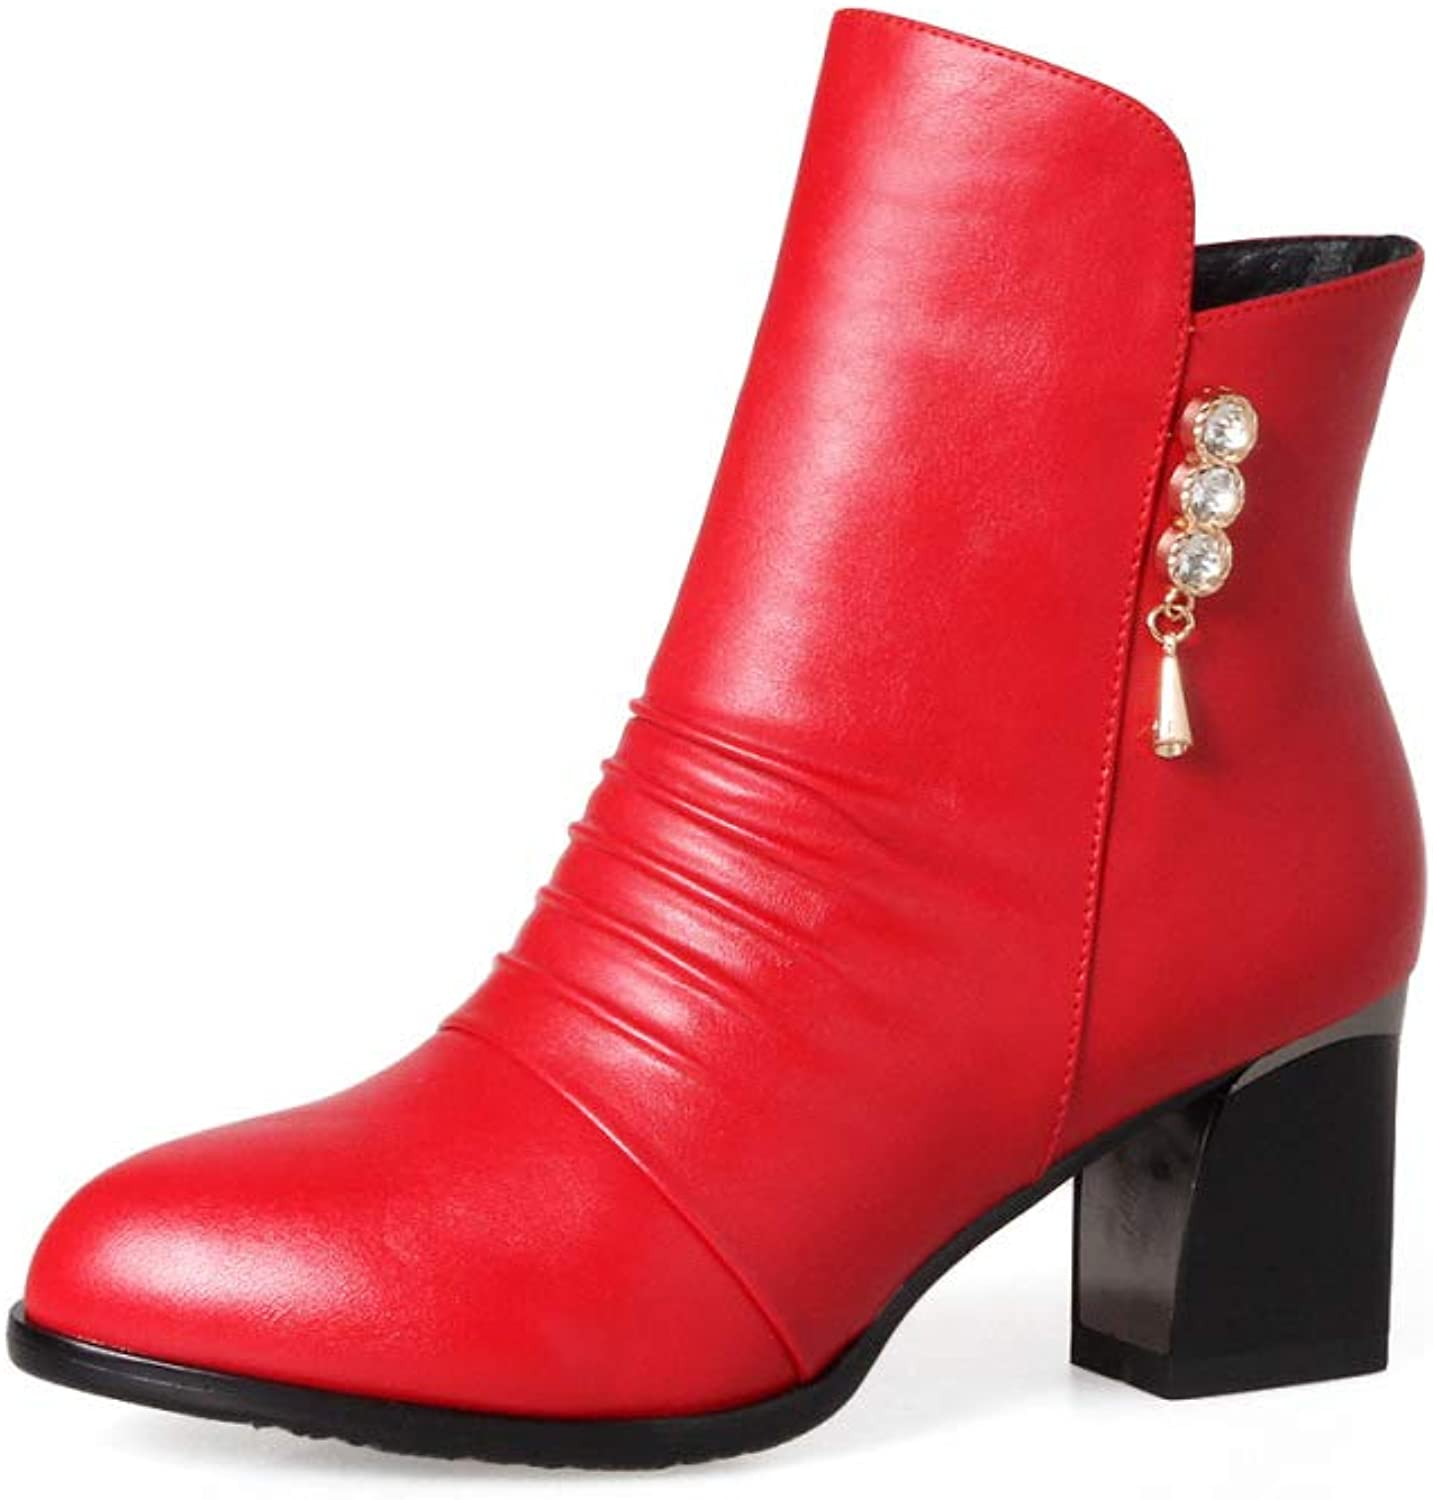 Women Leather Martin Boots 2018 Winter Fashion High Heel Ankle Boots Size 33-43 Short Boots,Red,34